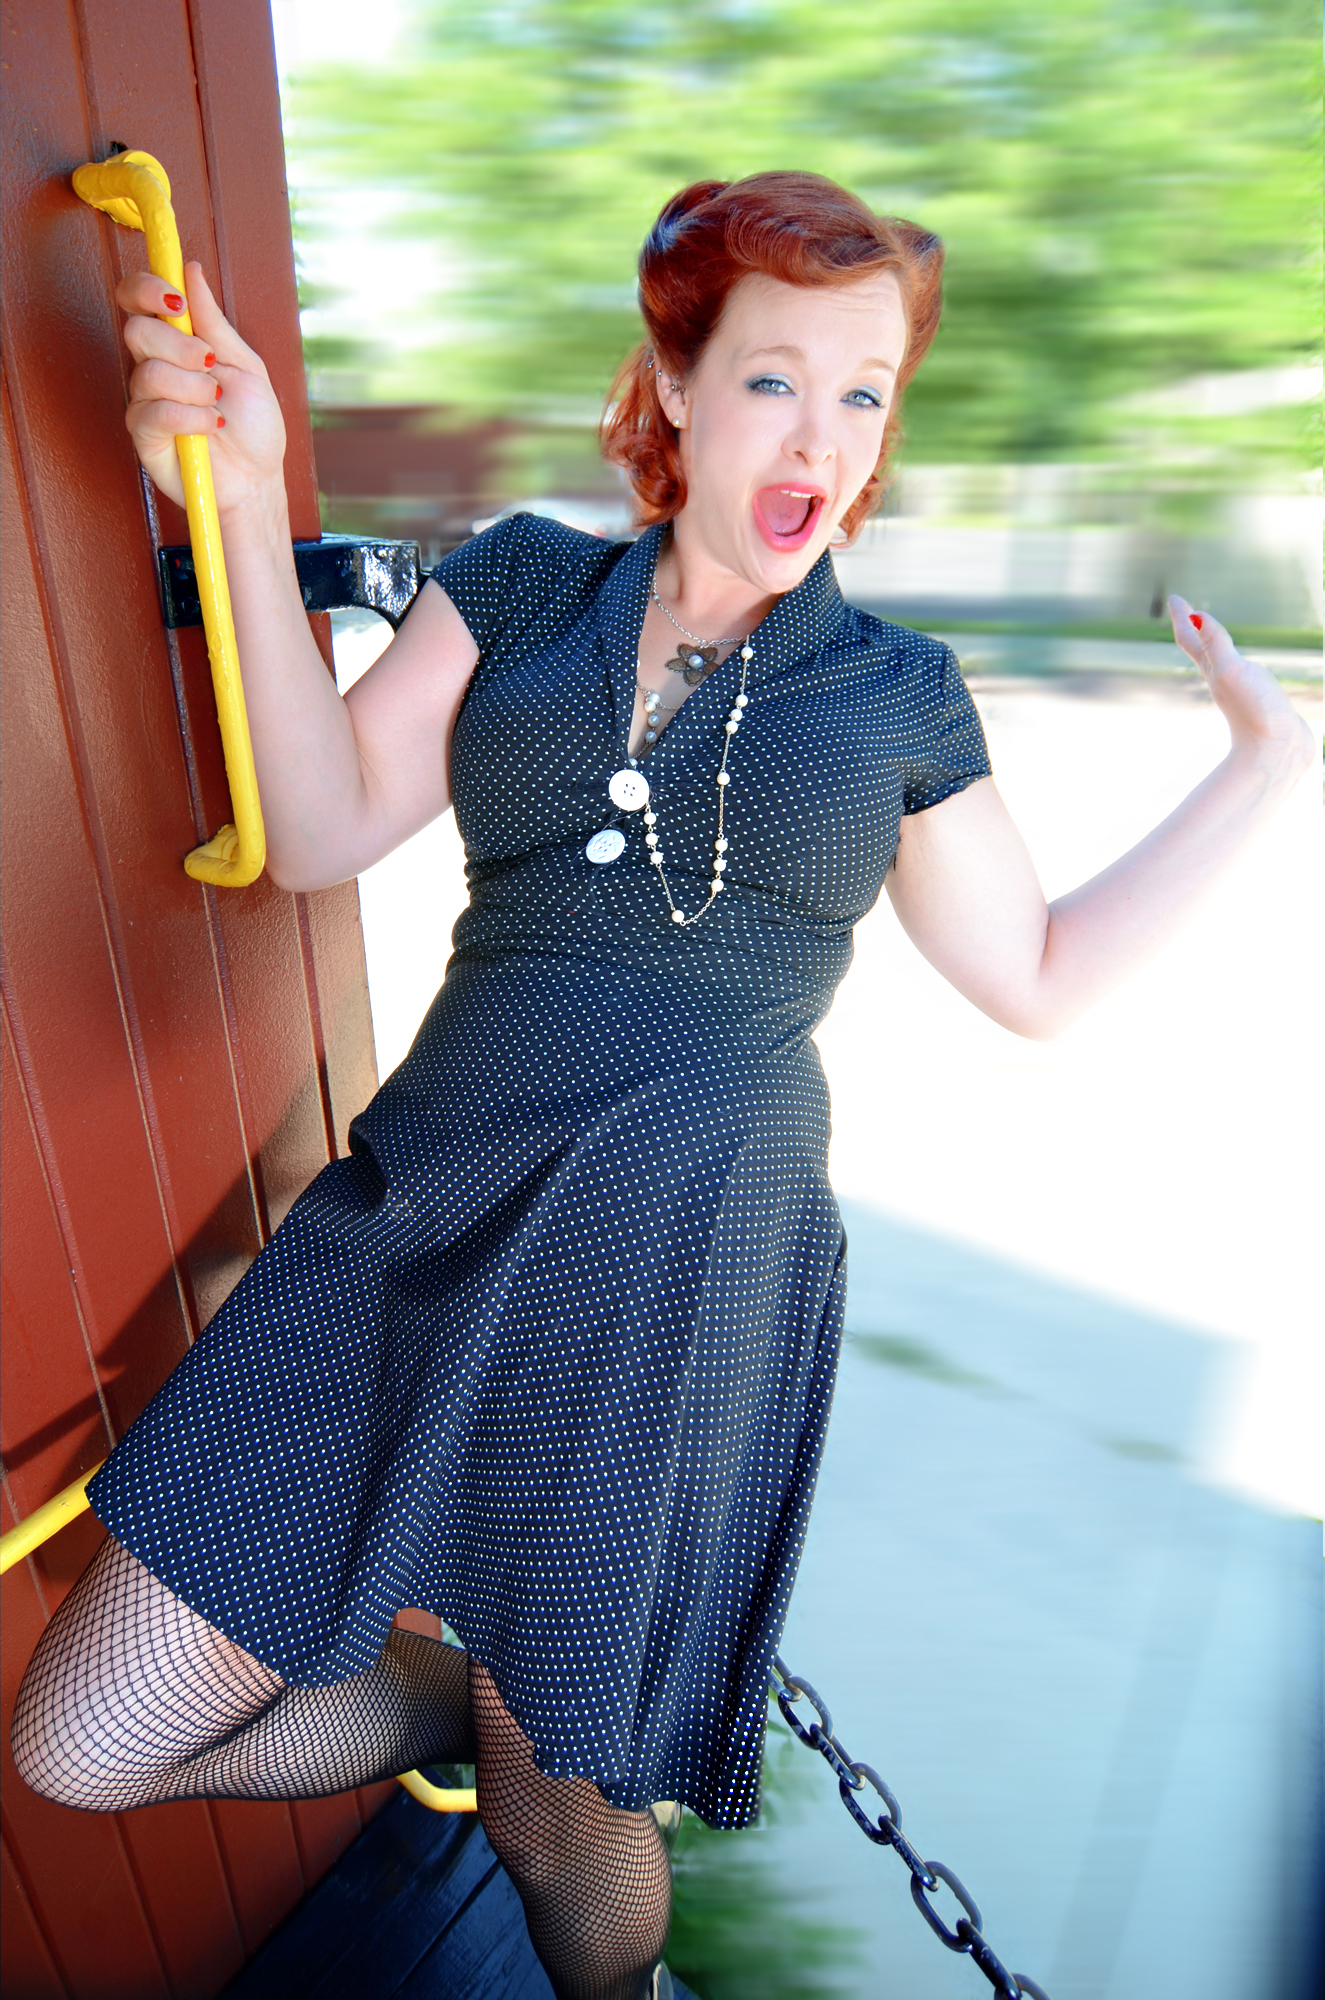 katie kelley pin-up photoshoot - dustinface com